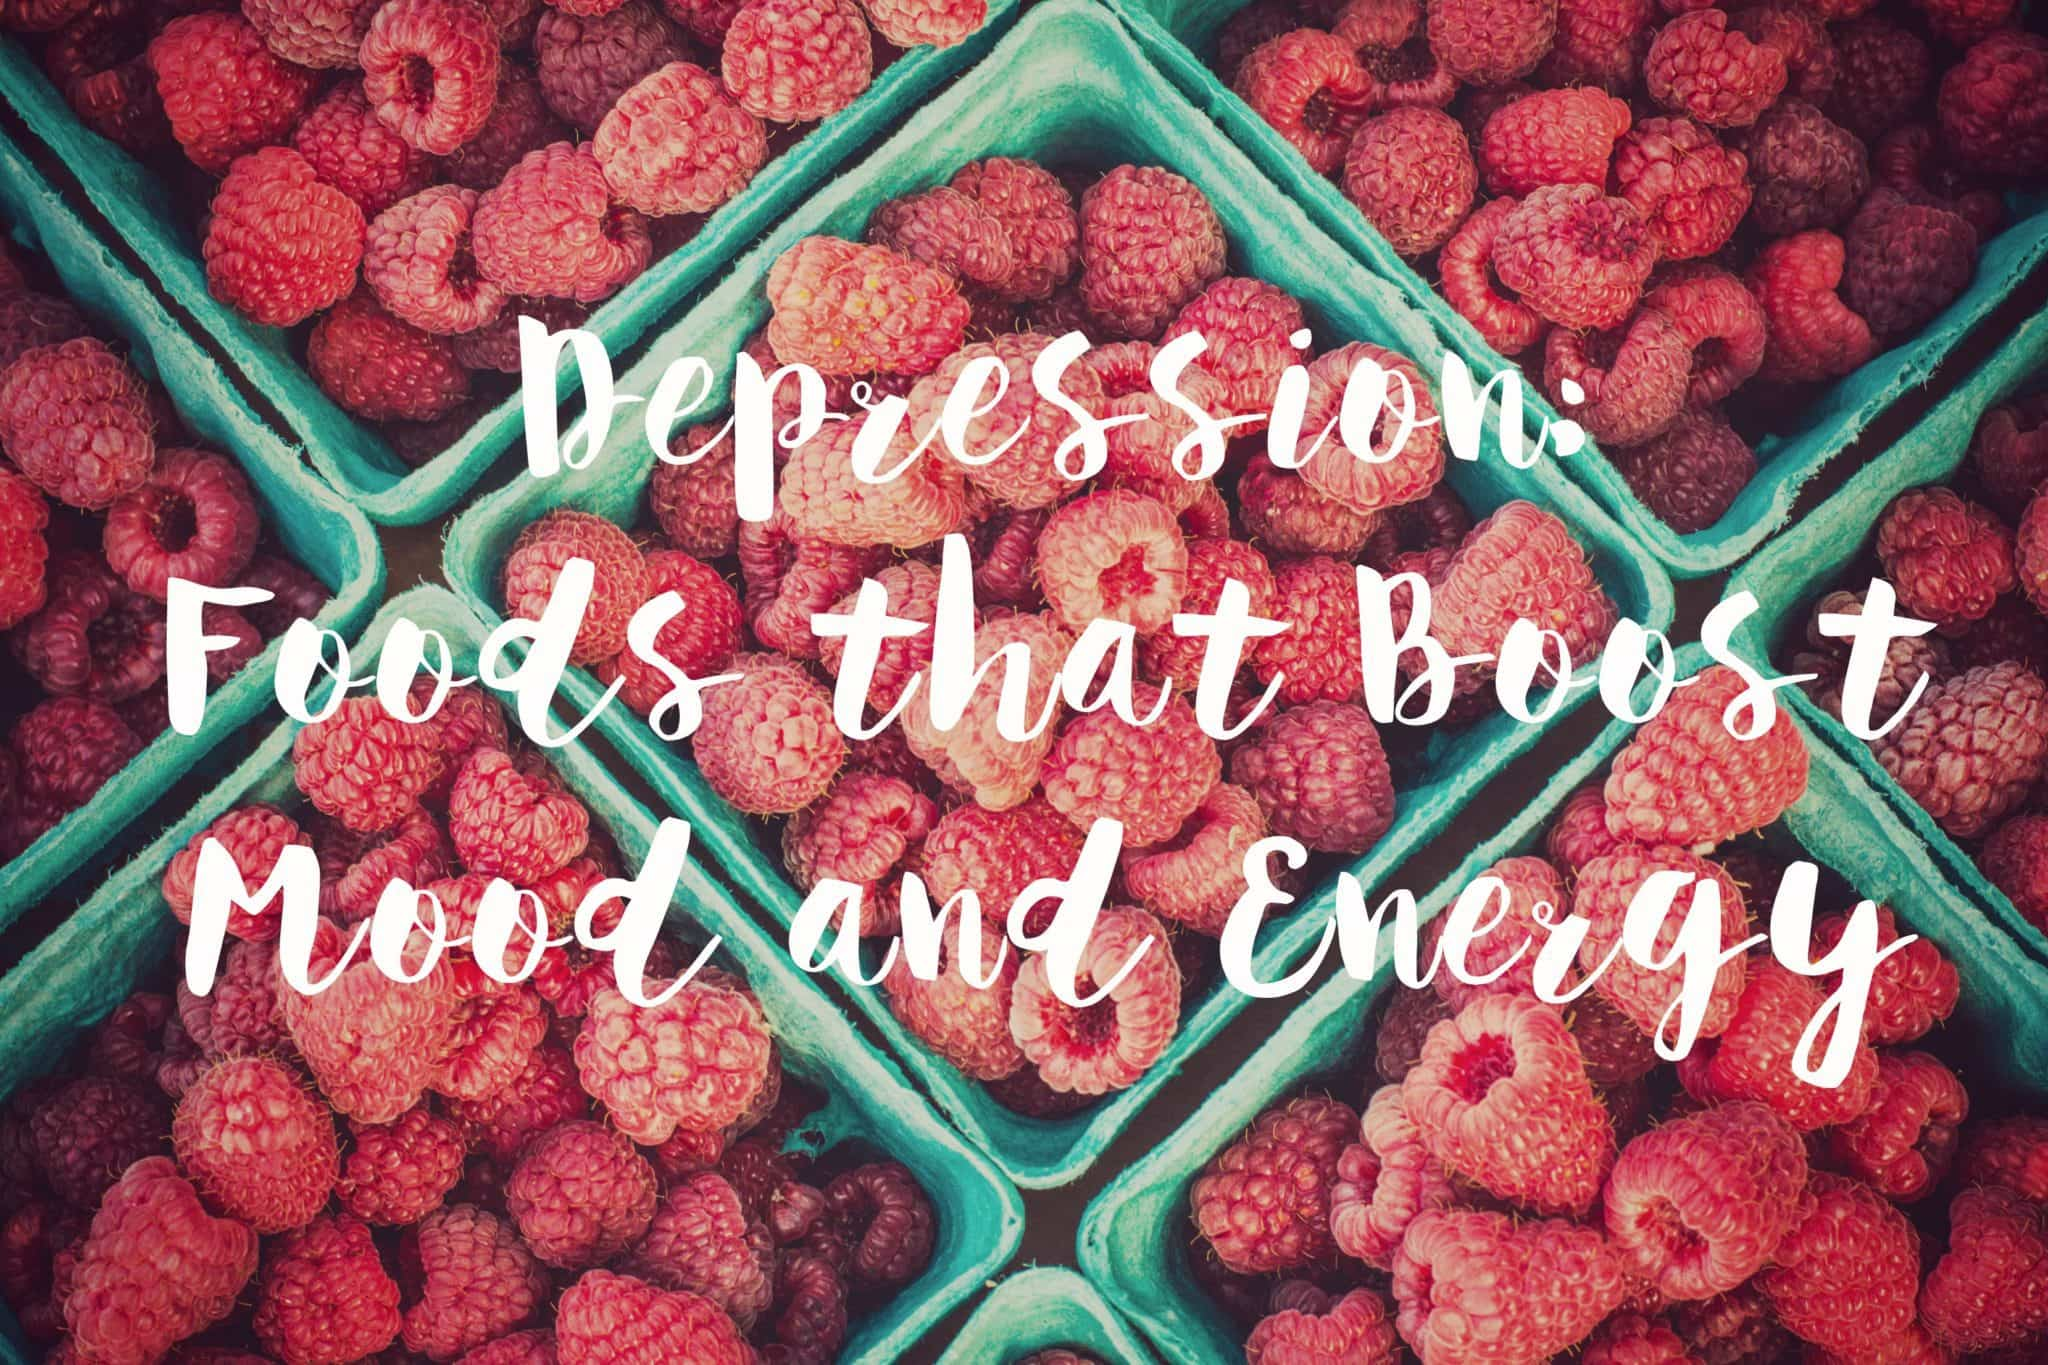 Depression Foods that Boost Mood and Energy